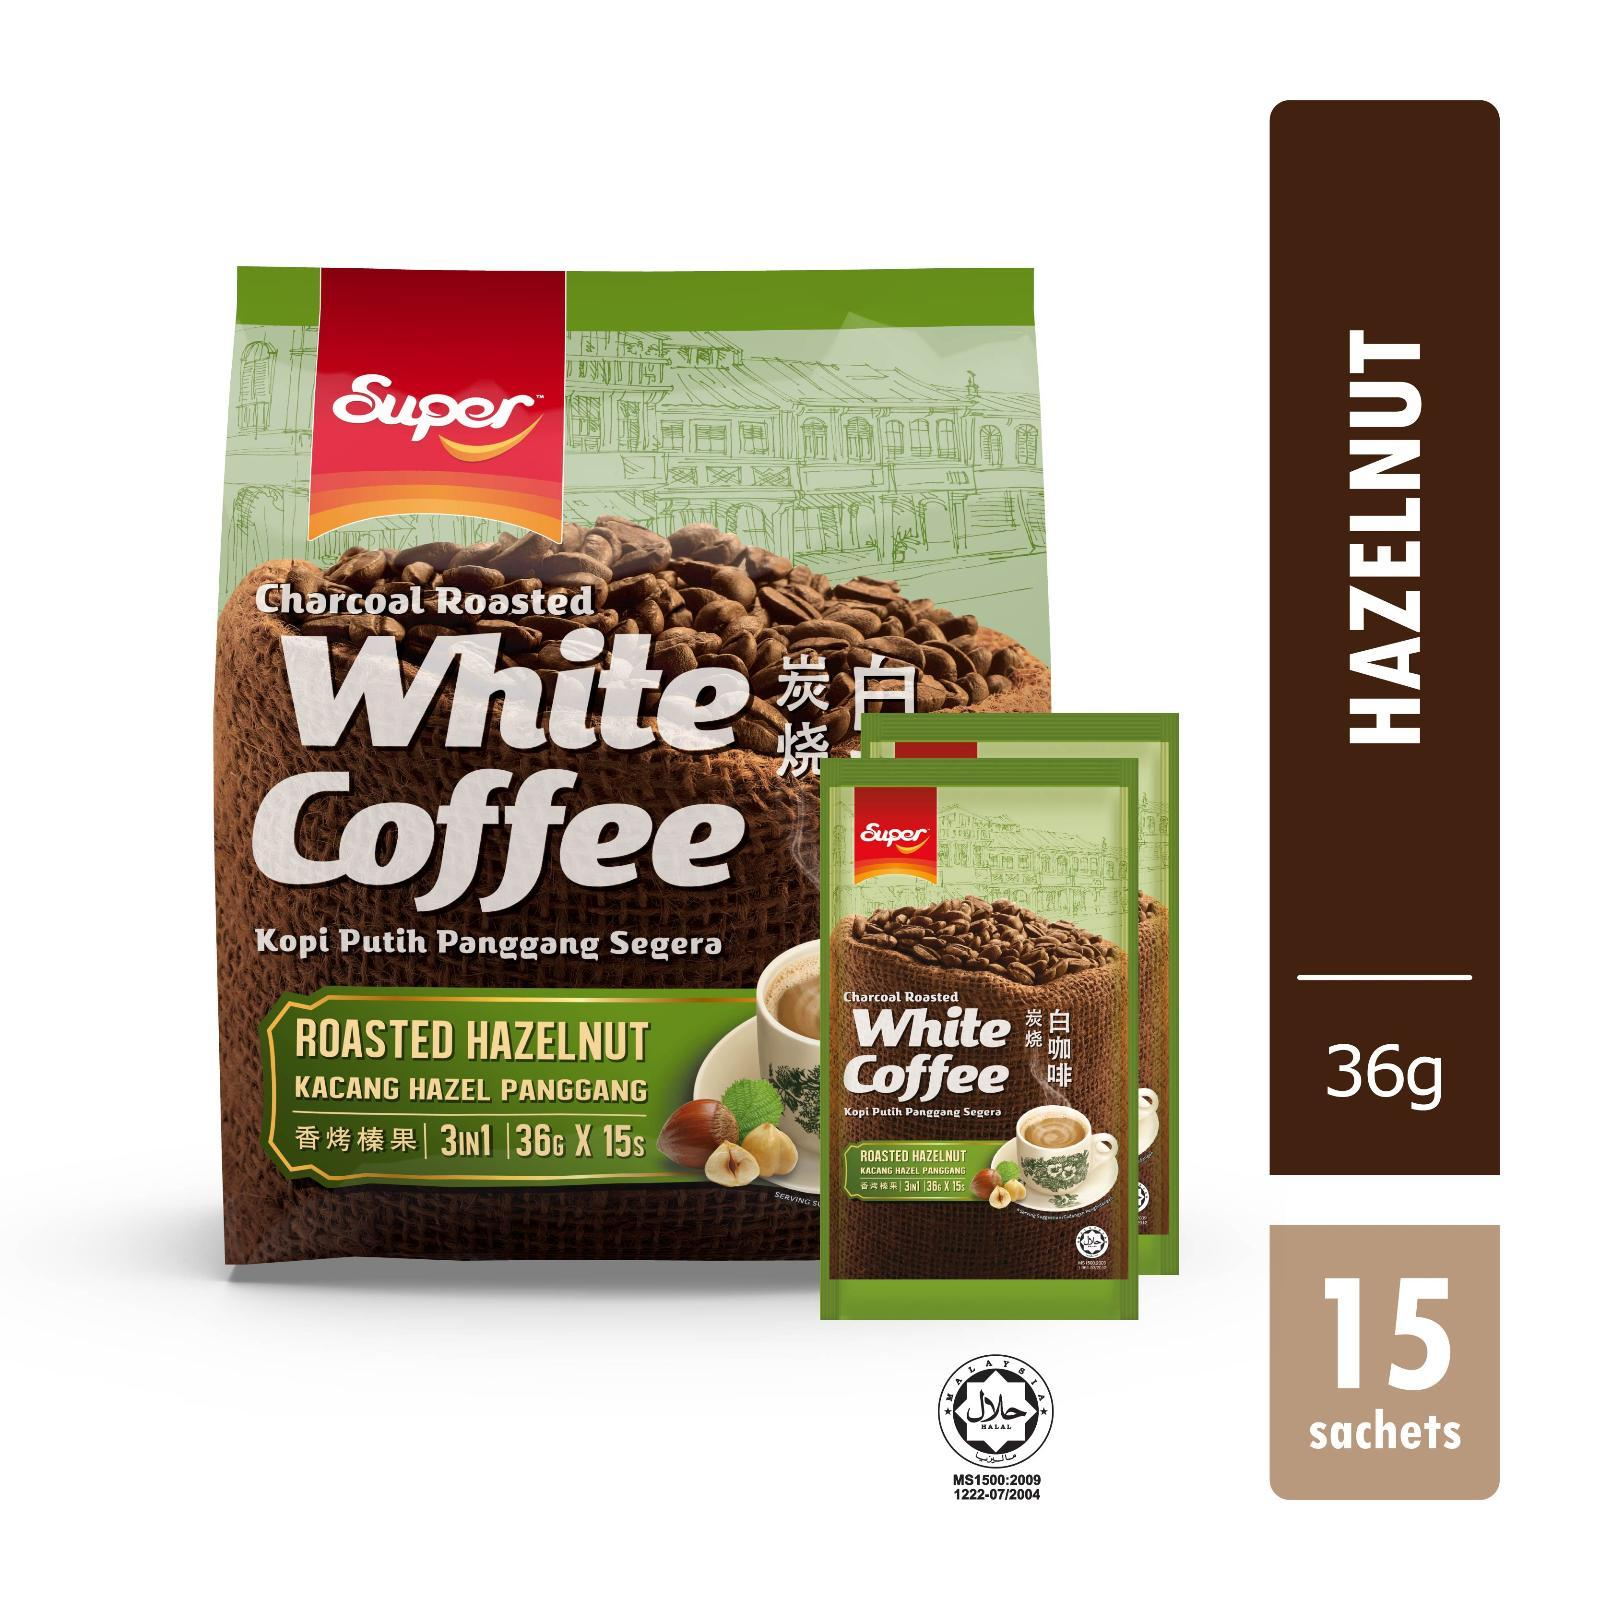 SUPER Instant White Coffee Charcoal Roasted 3-In-1 Hazelnut 15sX36g